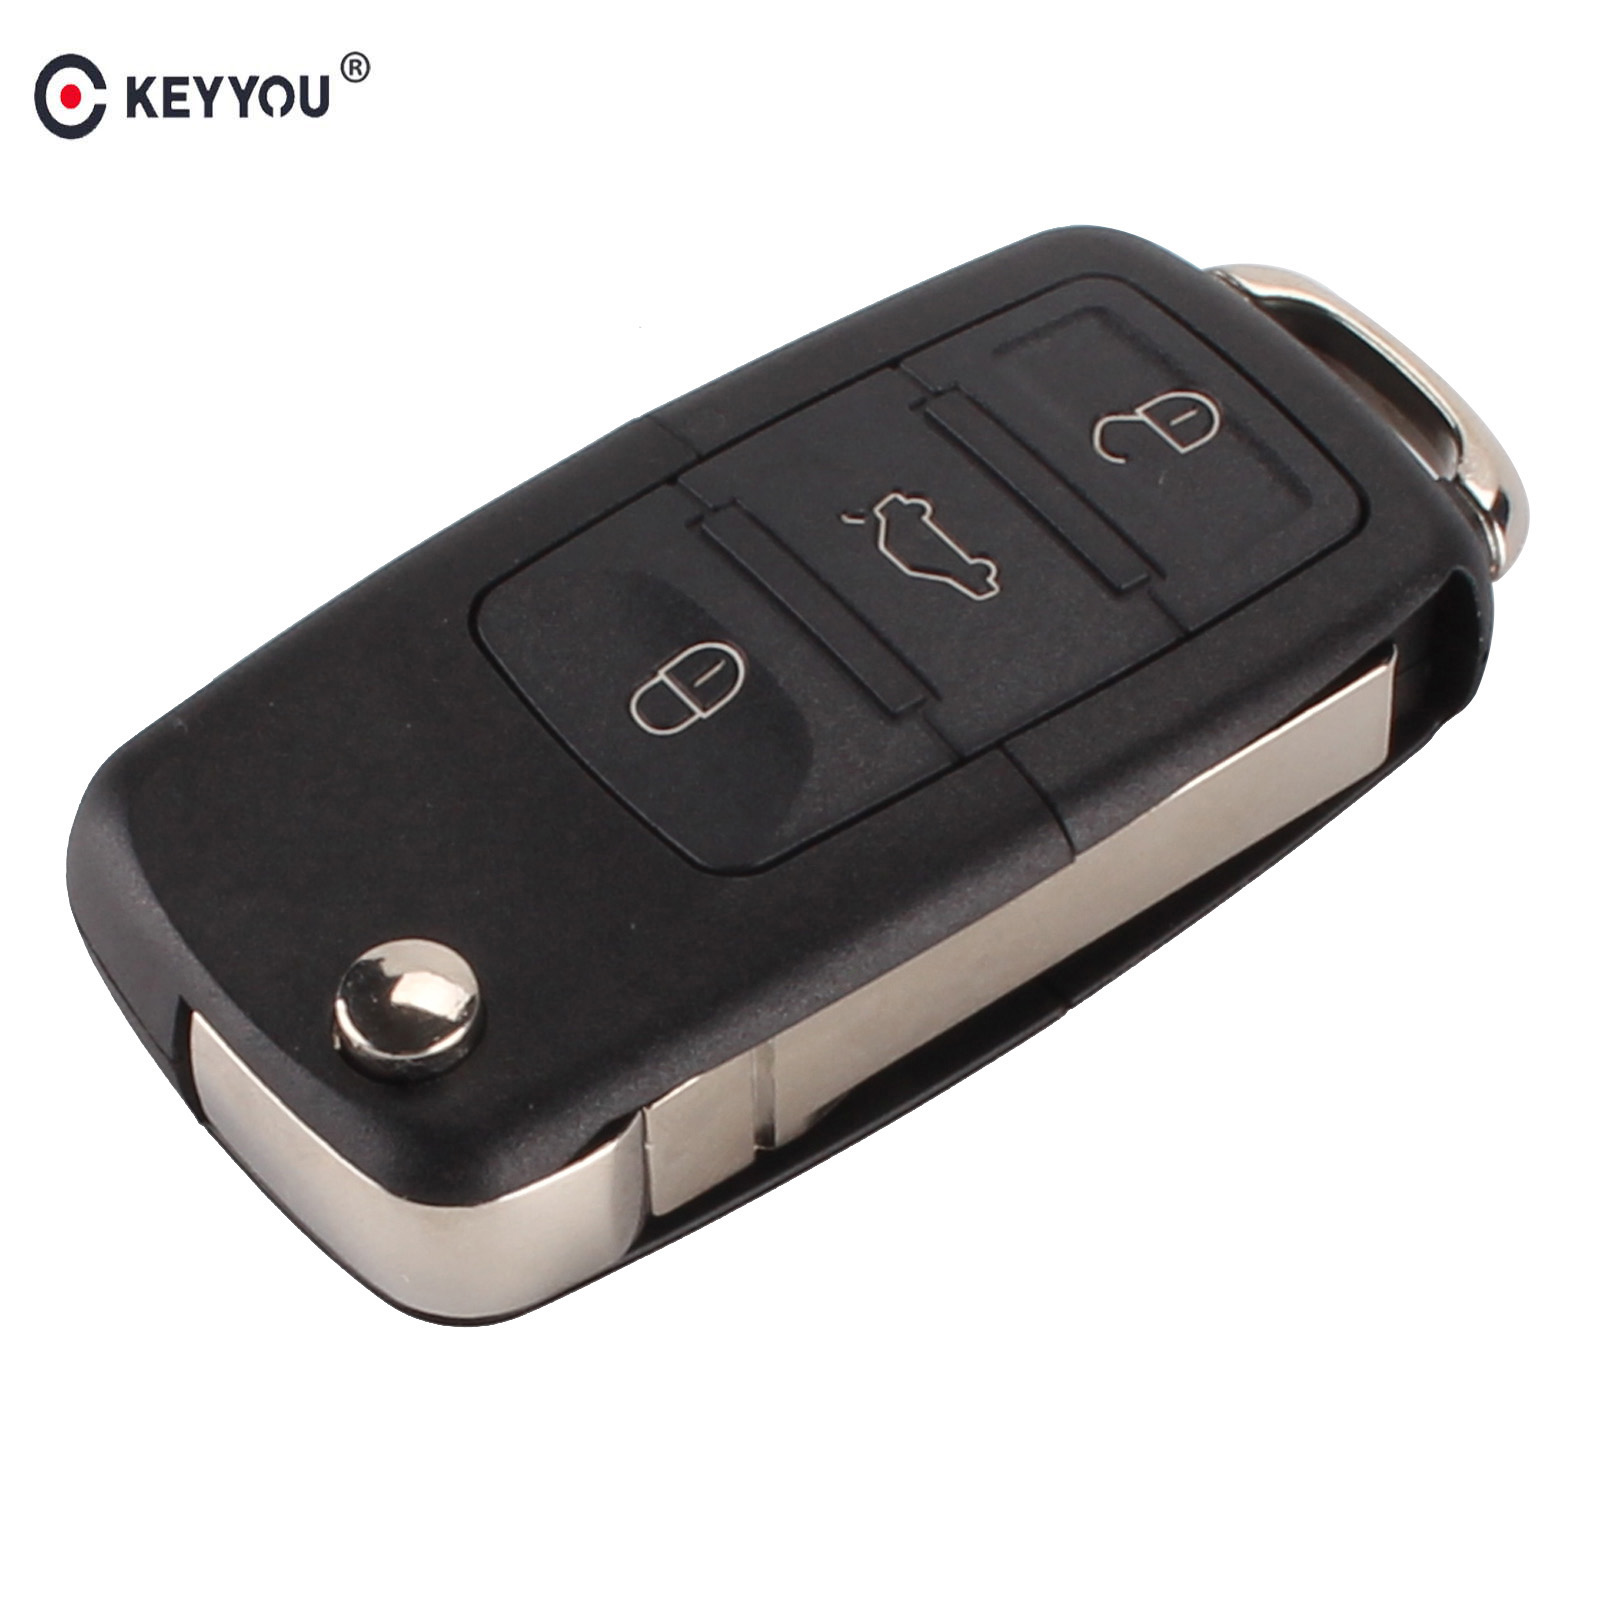 KEYYOU 3 button Folding Car Remote Flip Key Shell Case Fob For VW Passat Polo Golf Touran Bora Ibiza Leon Octavia Fabia наклейки vw volkswagen passat touran seat ibiza skoda octavia fabia 3